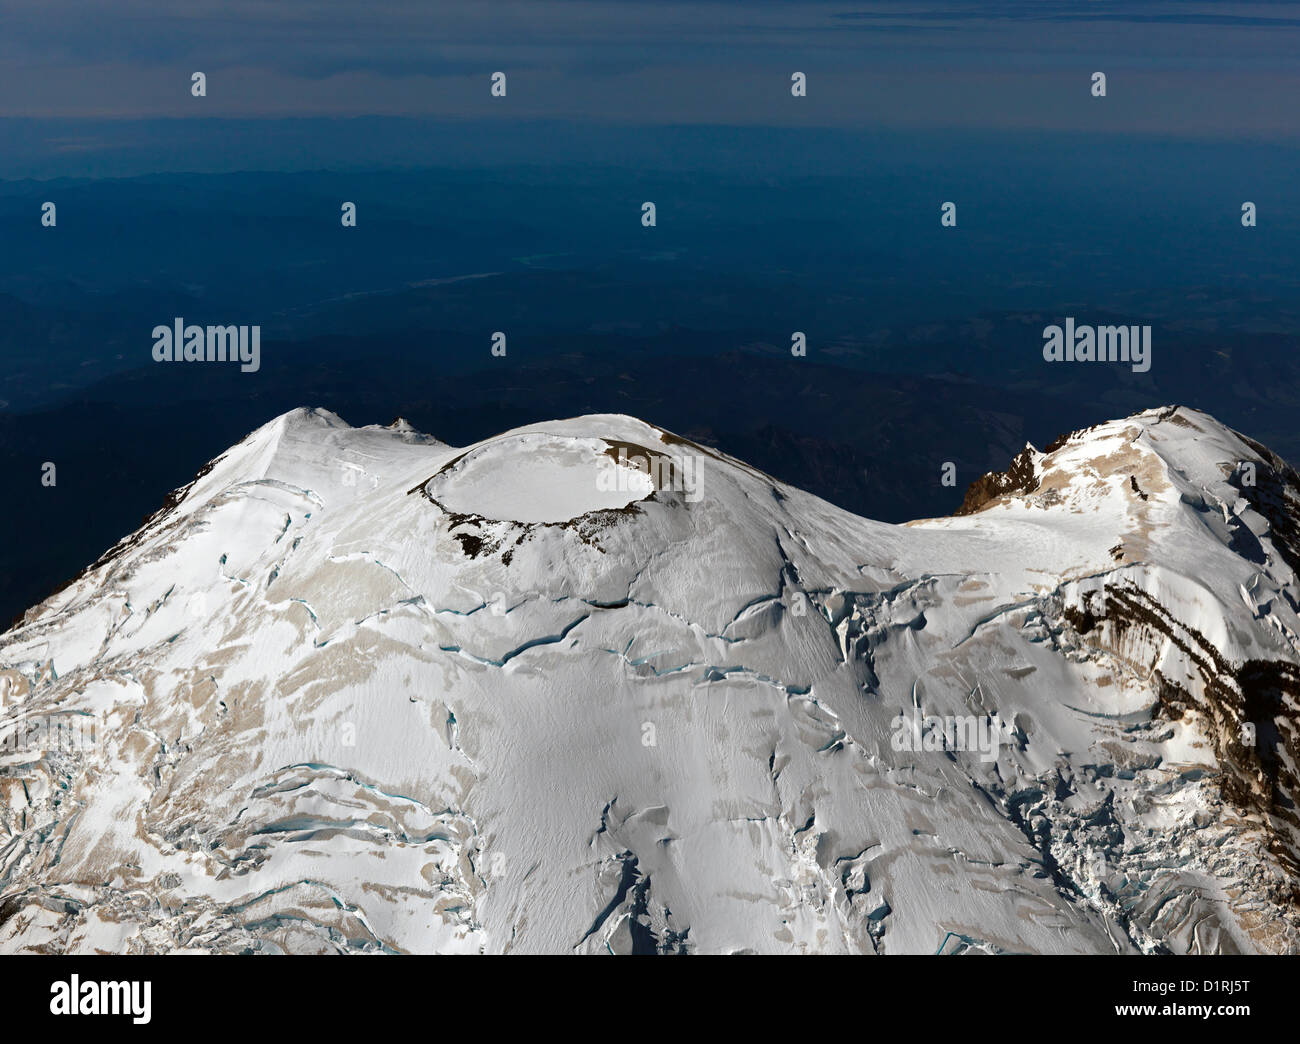 Mount Rainier just east of Seattle and aerial photo. Mount Rainier National Park is the gateway for mountaineering - Stock Image